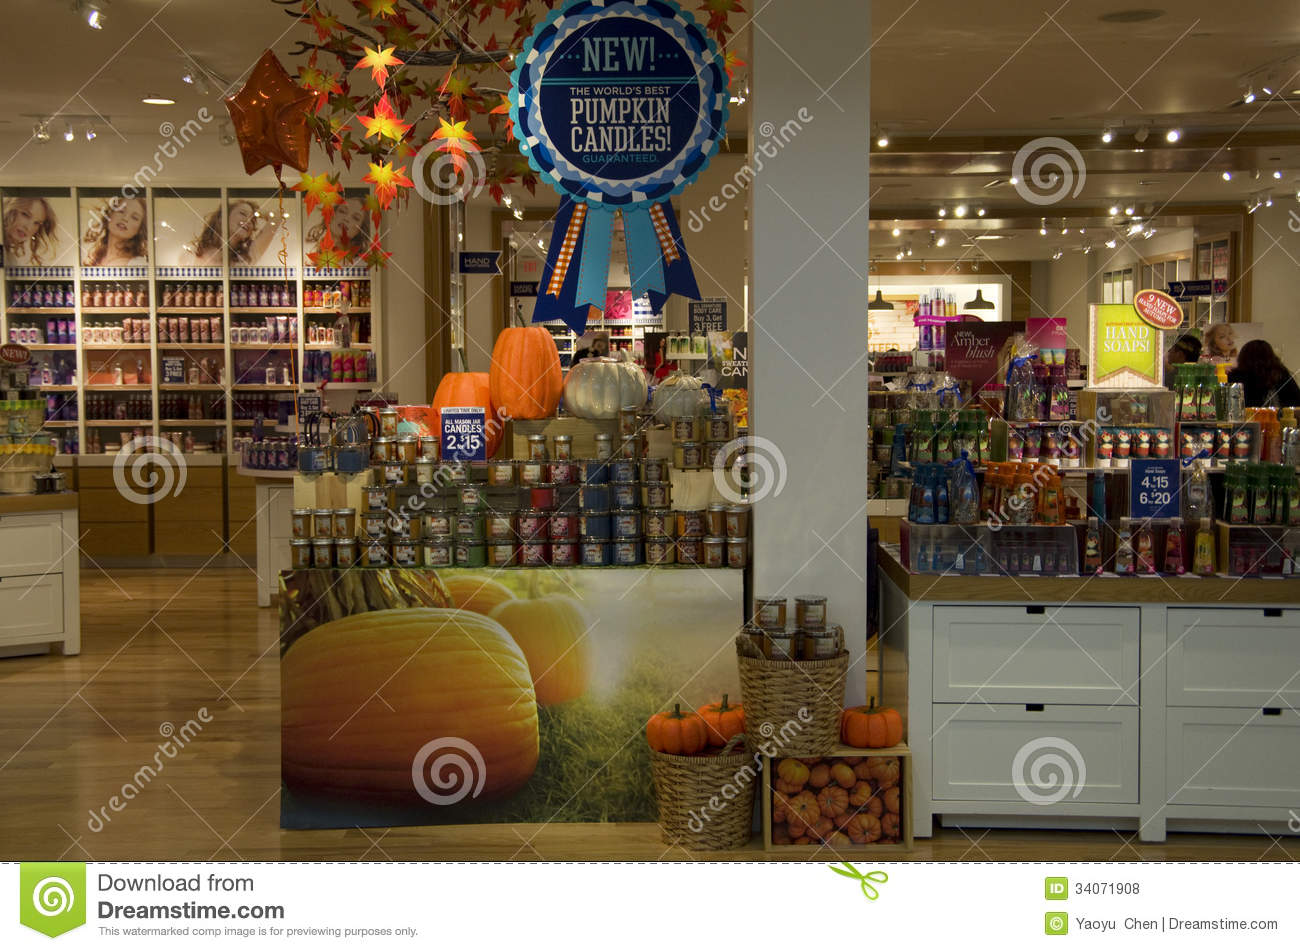 Candles Halloween Decorations Store Editorial Stock Photo - At Home Store Halloween Decorations